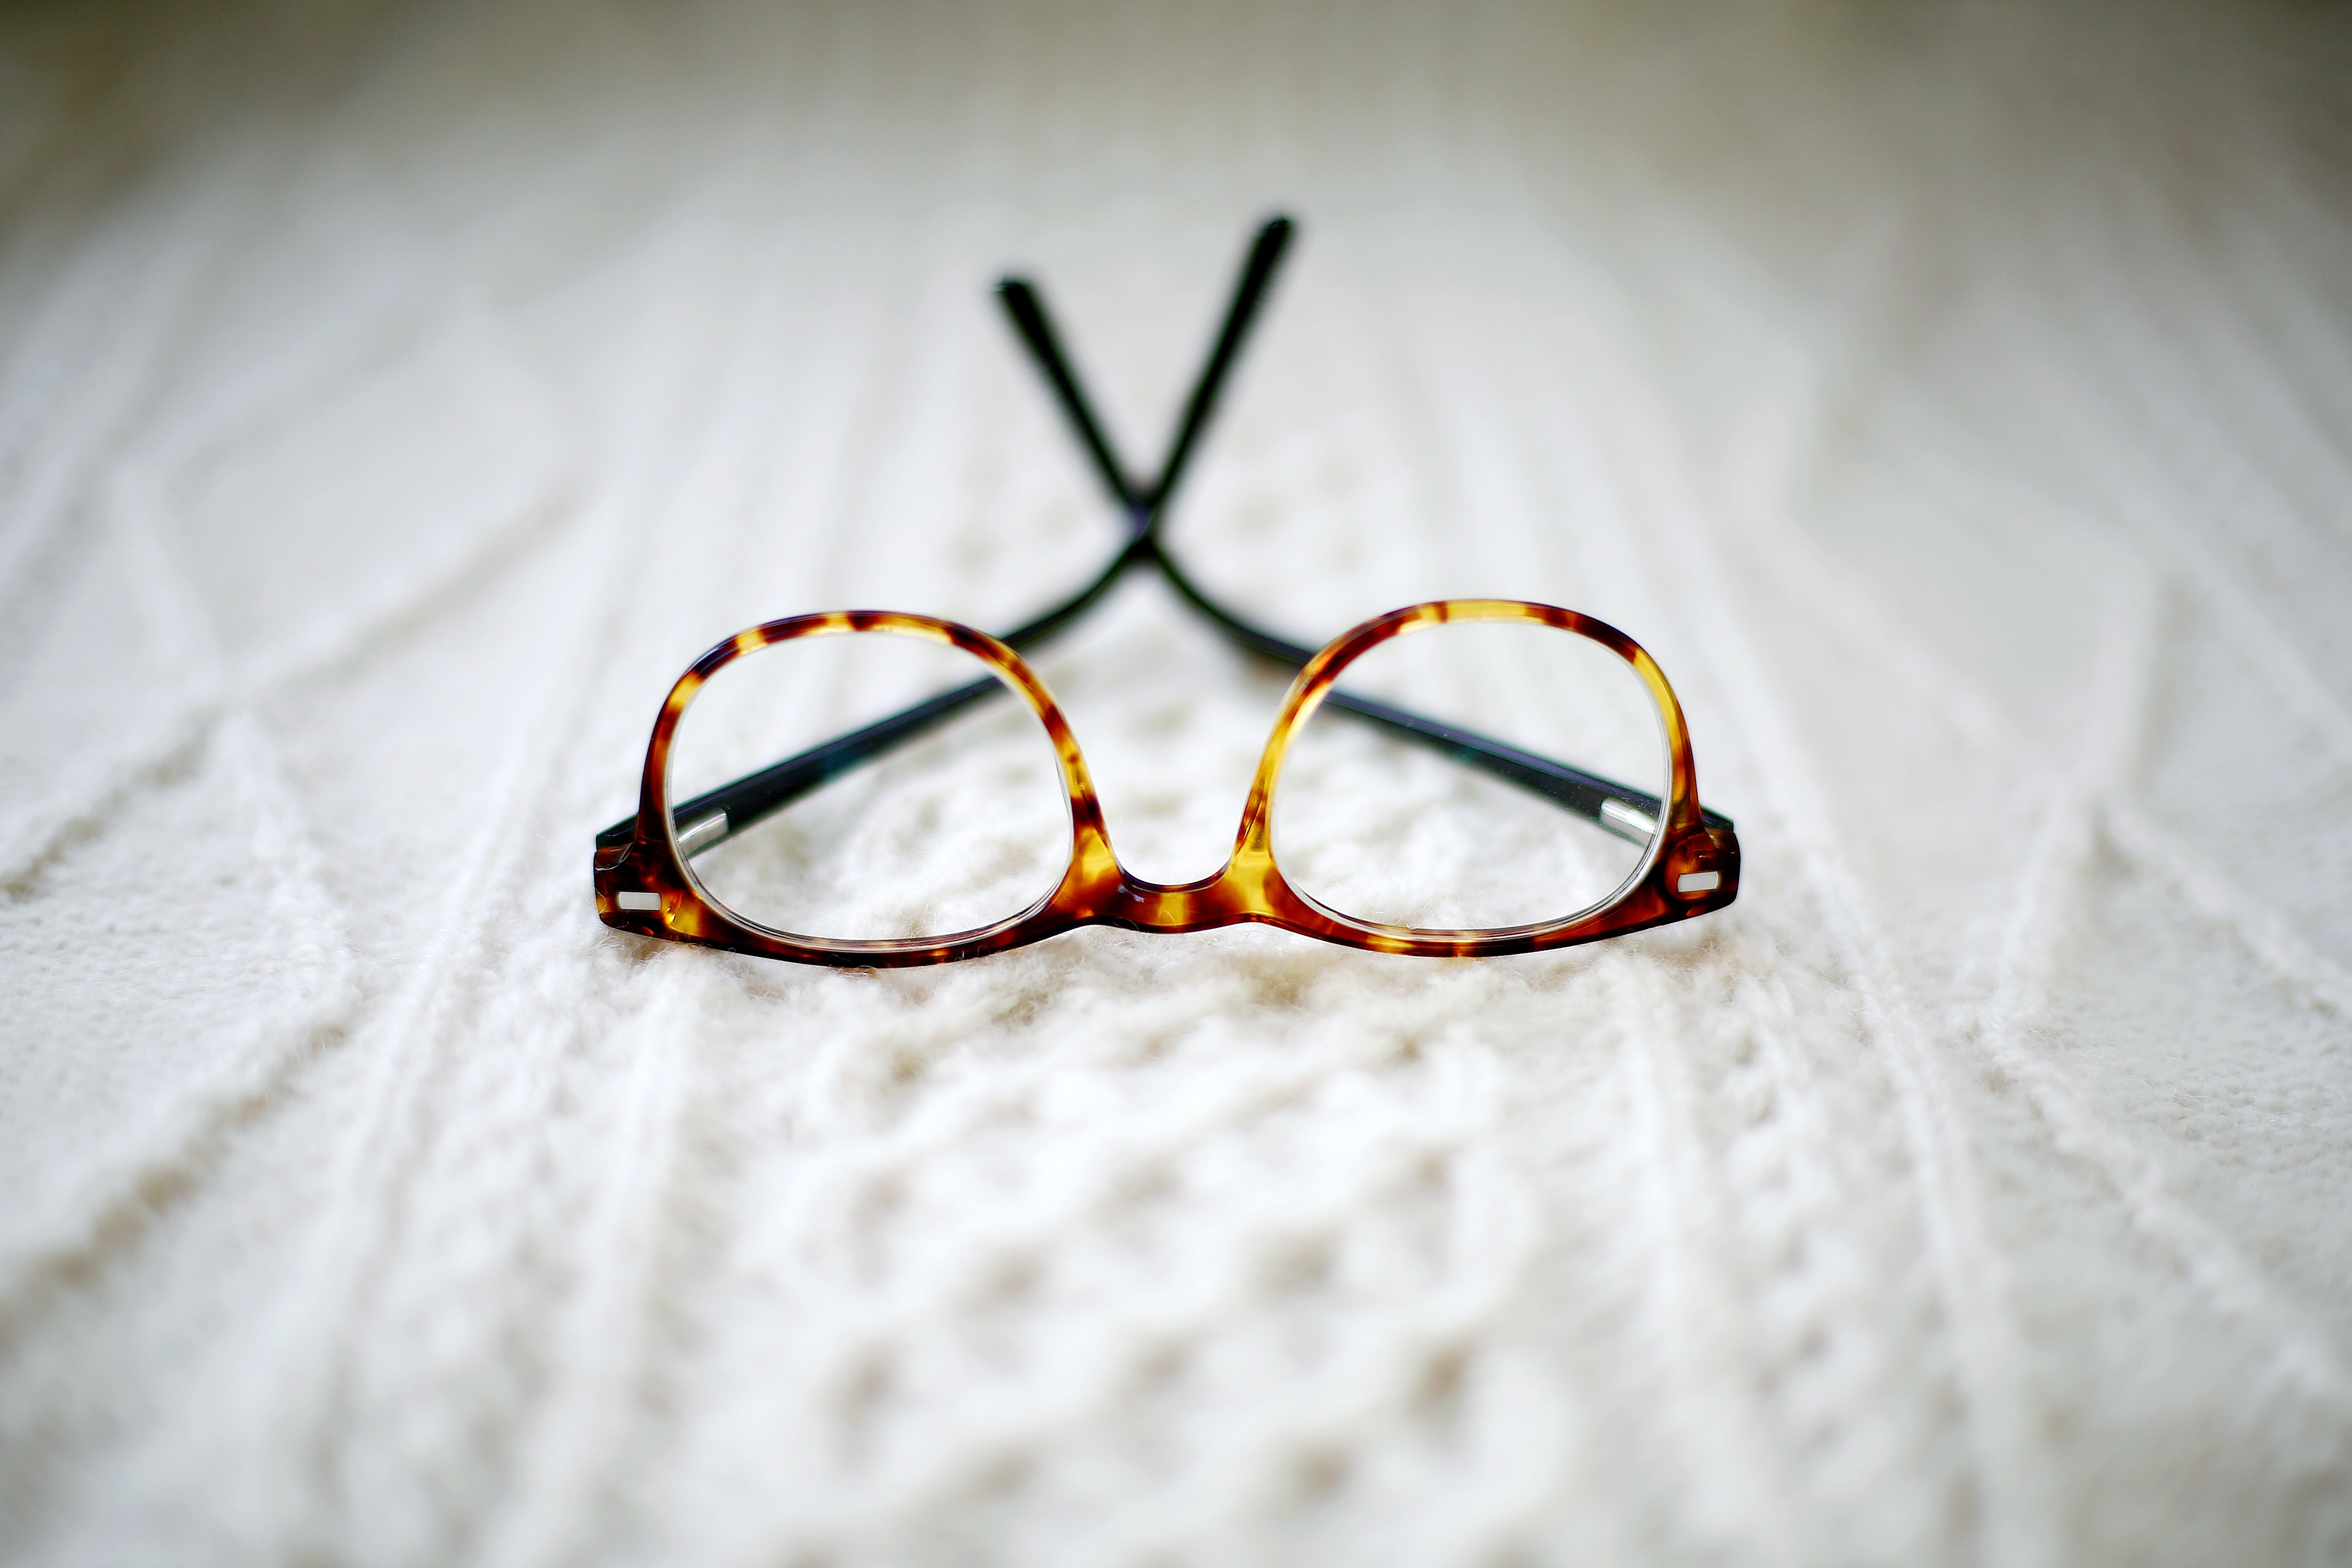 A pair of yellow speckled glasses resting upside down on a patterned white fabric